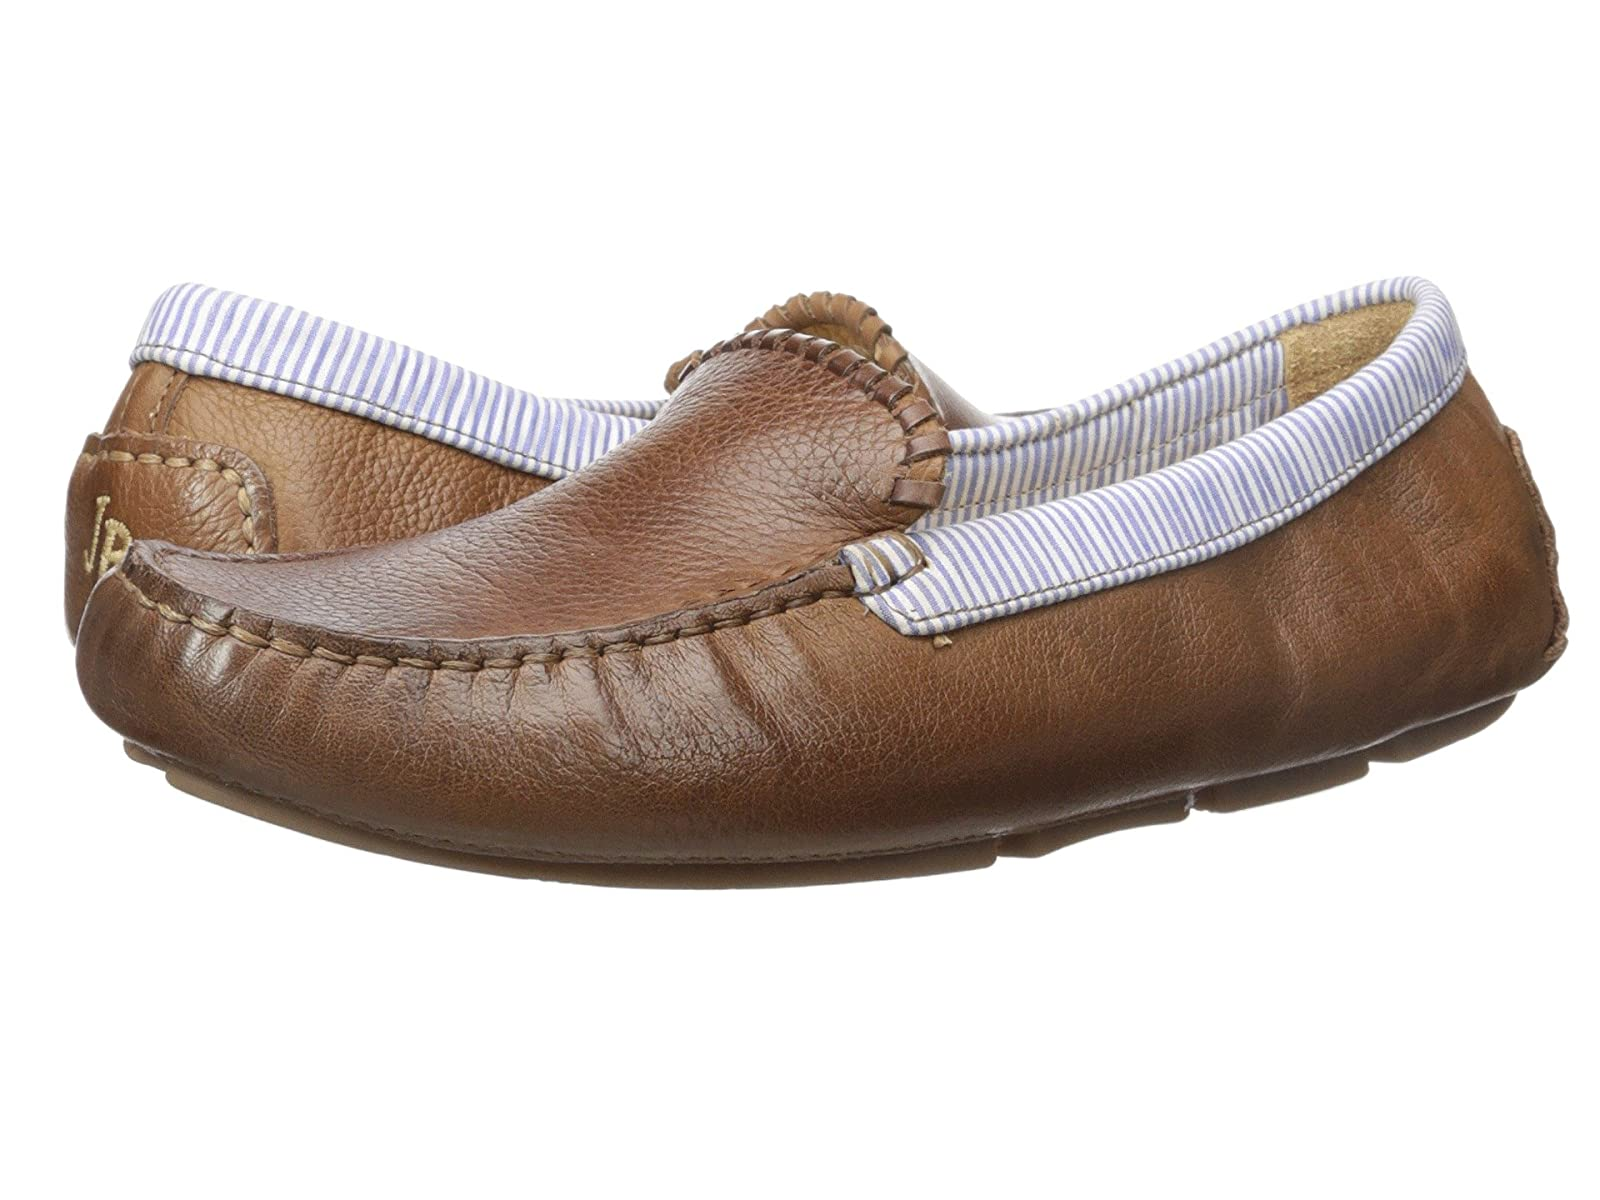 Jack Rogers BarrettCheap and distinctive eye-catching shoes